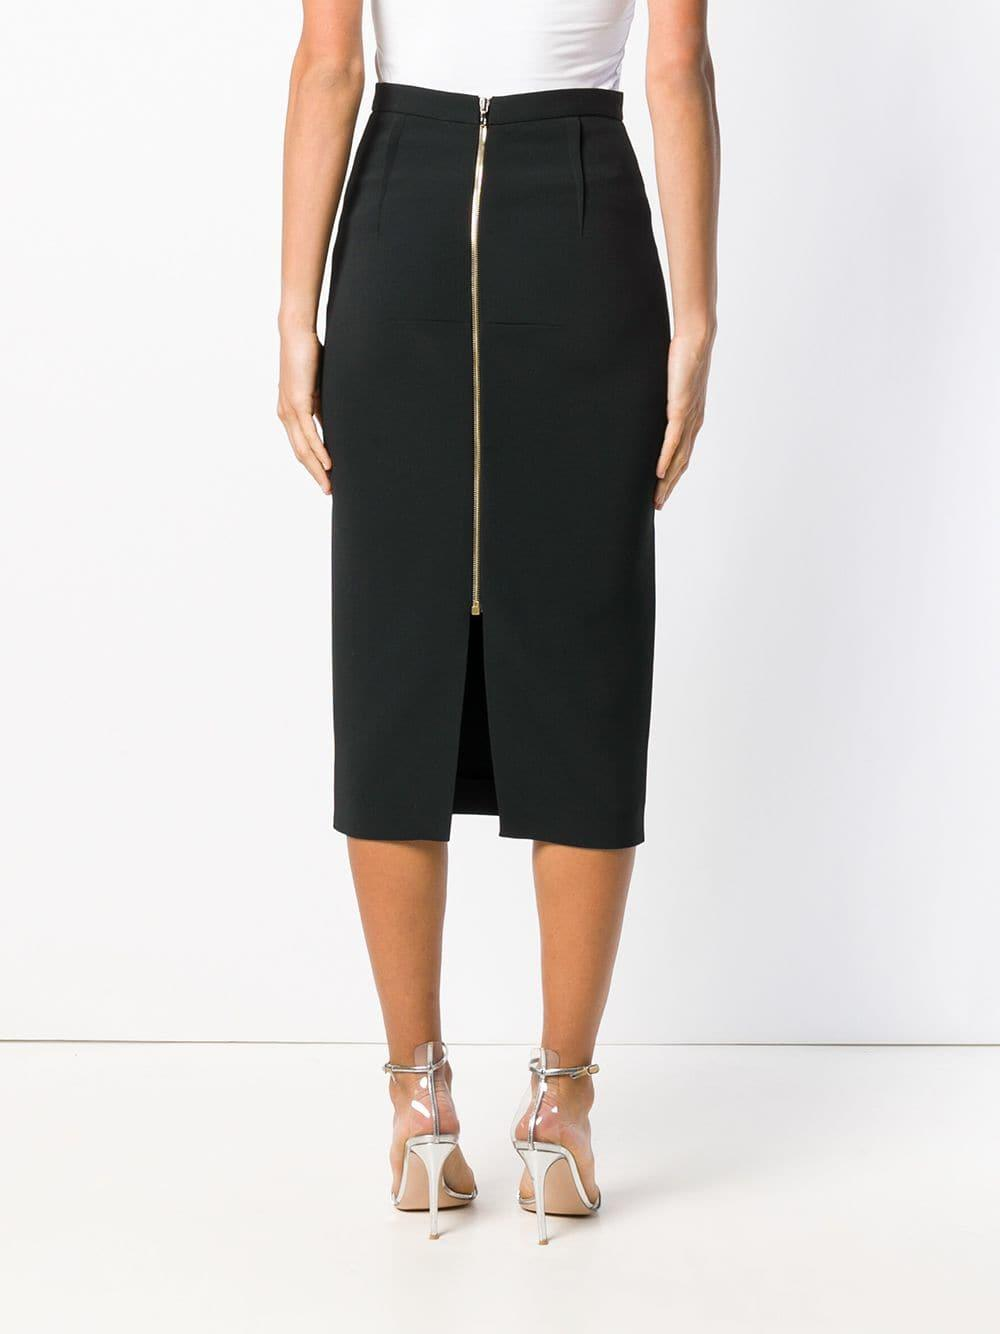 Roland Mouret Synthetic Pencil Skirt in Black